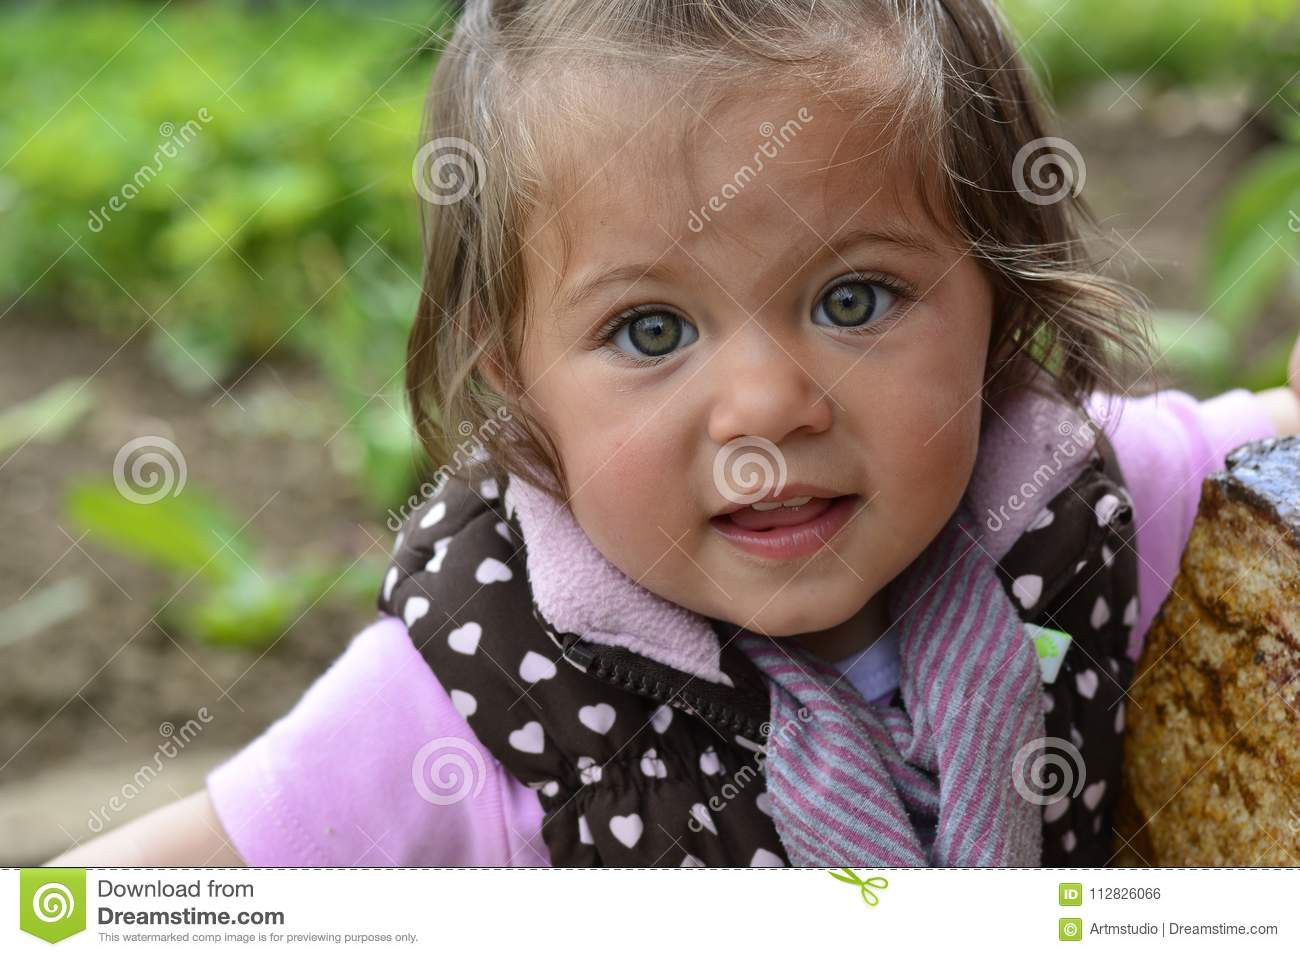 Emma Little Girl With Green Eyes Stock Photo Image Of Smile